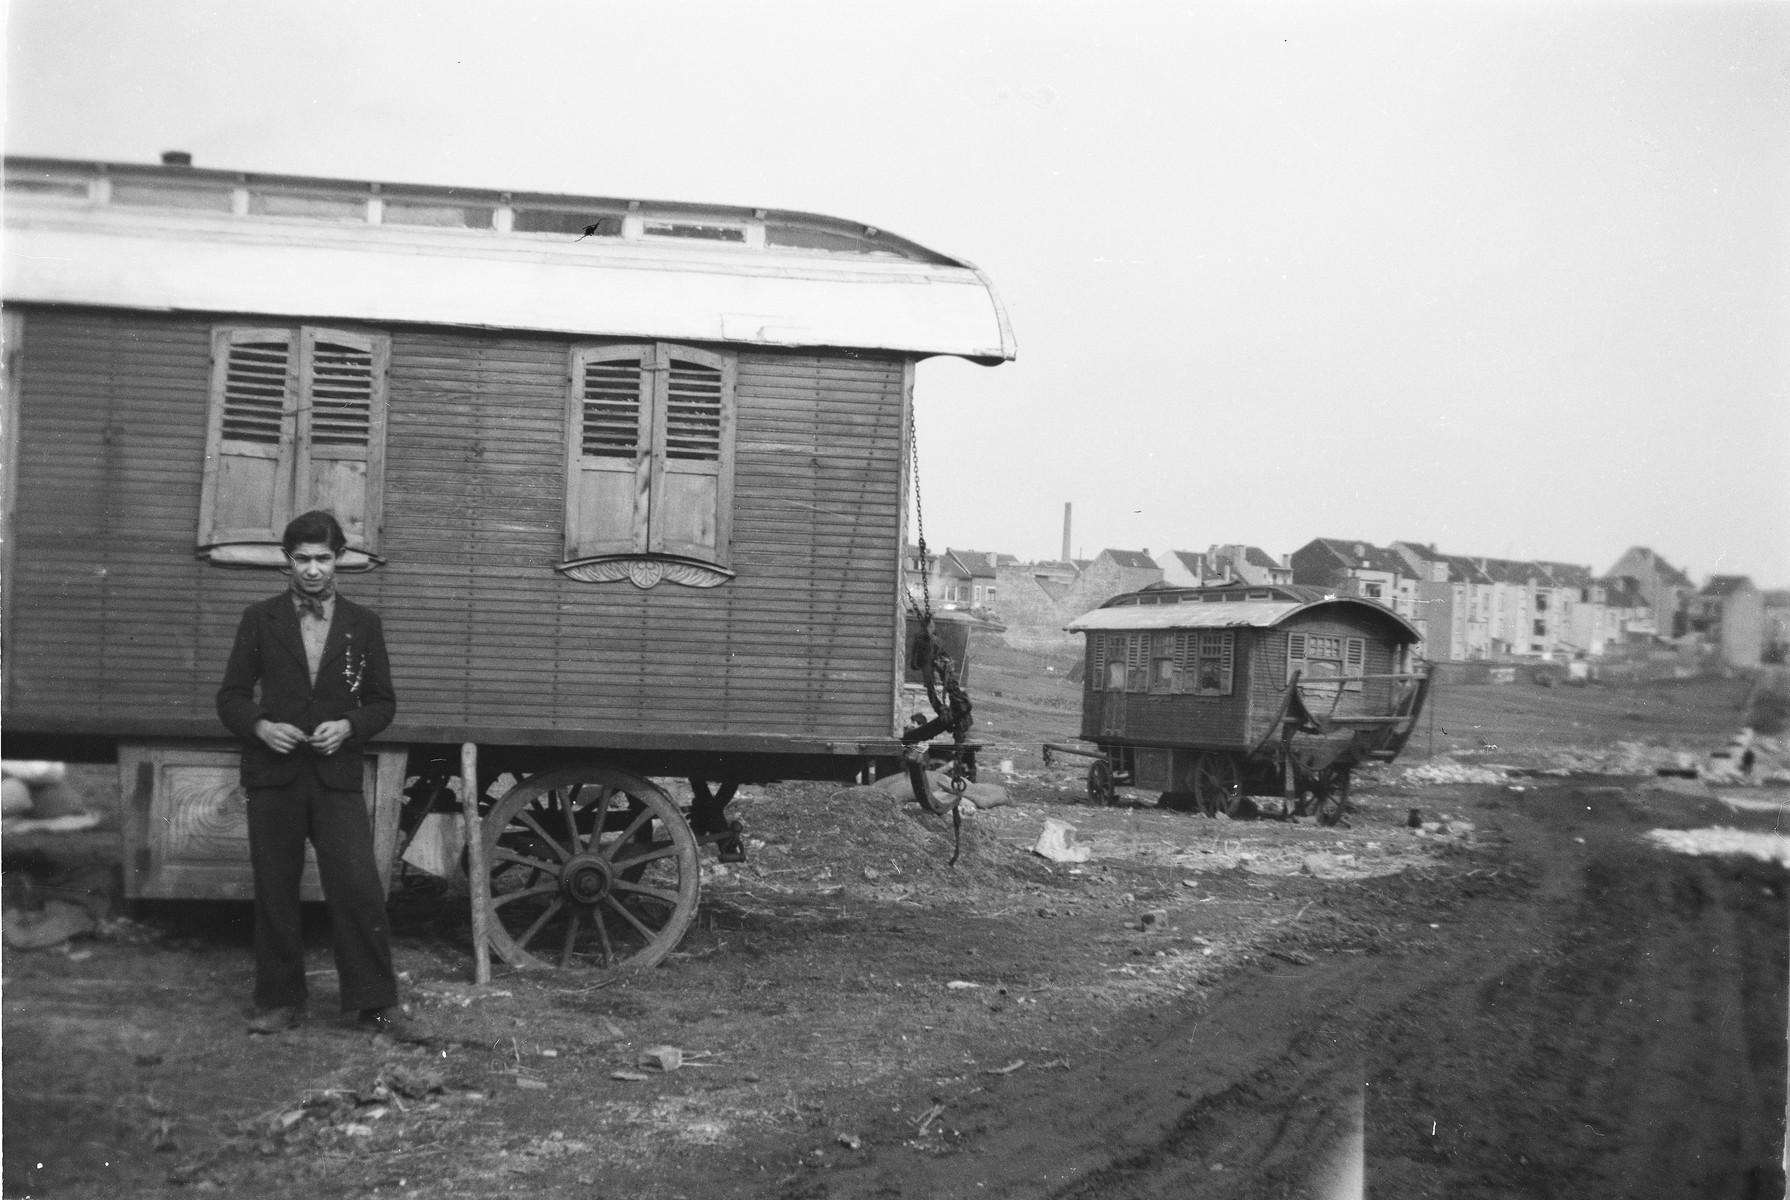 A young Romani (Gypsy) man poses in front of a caravan.